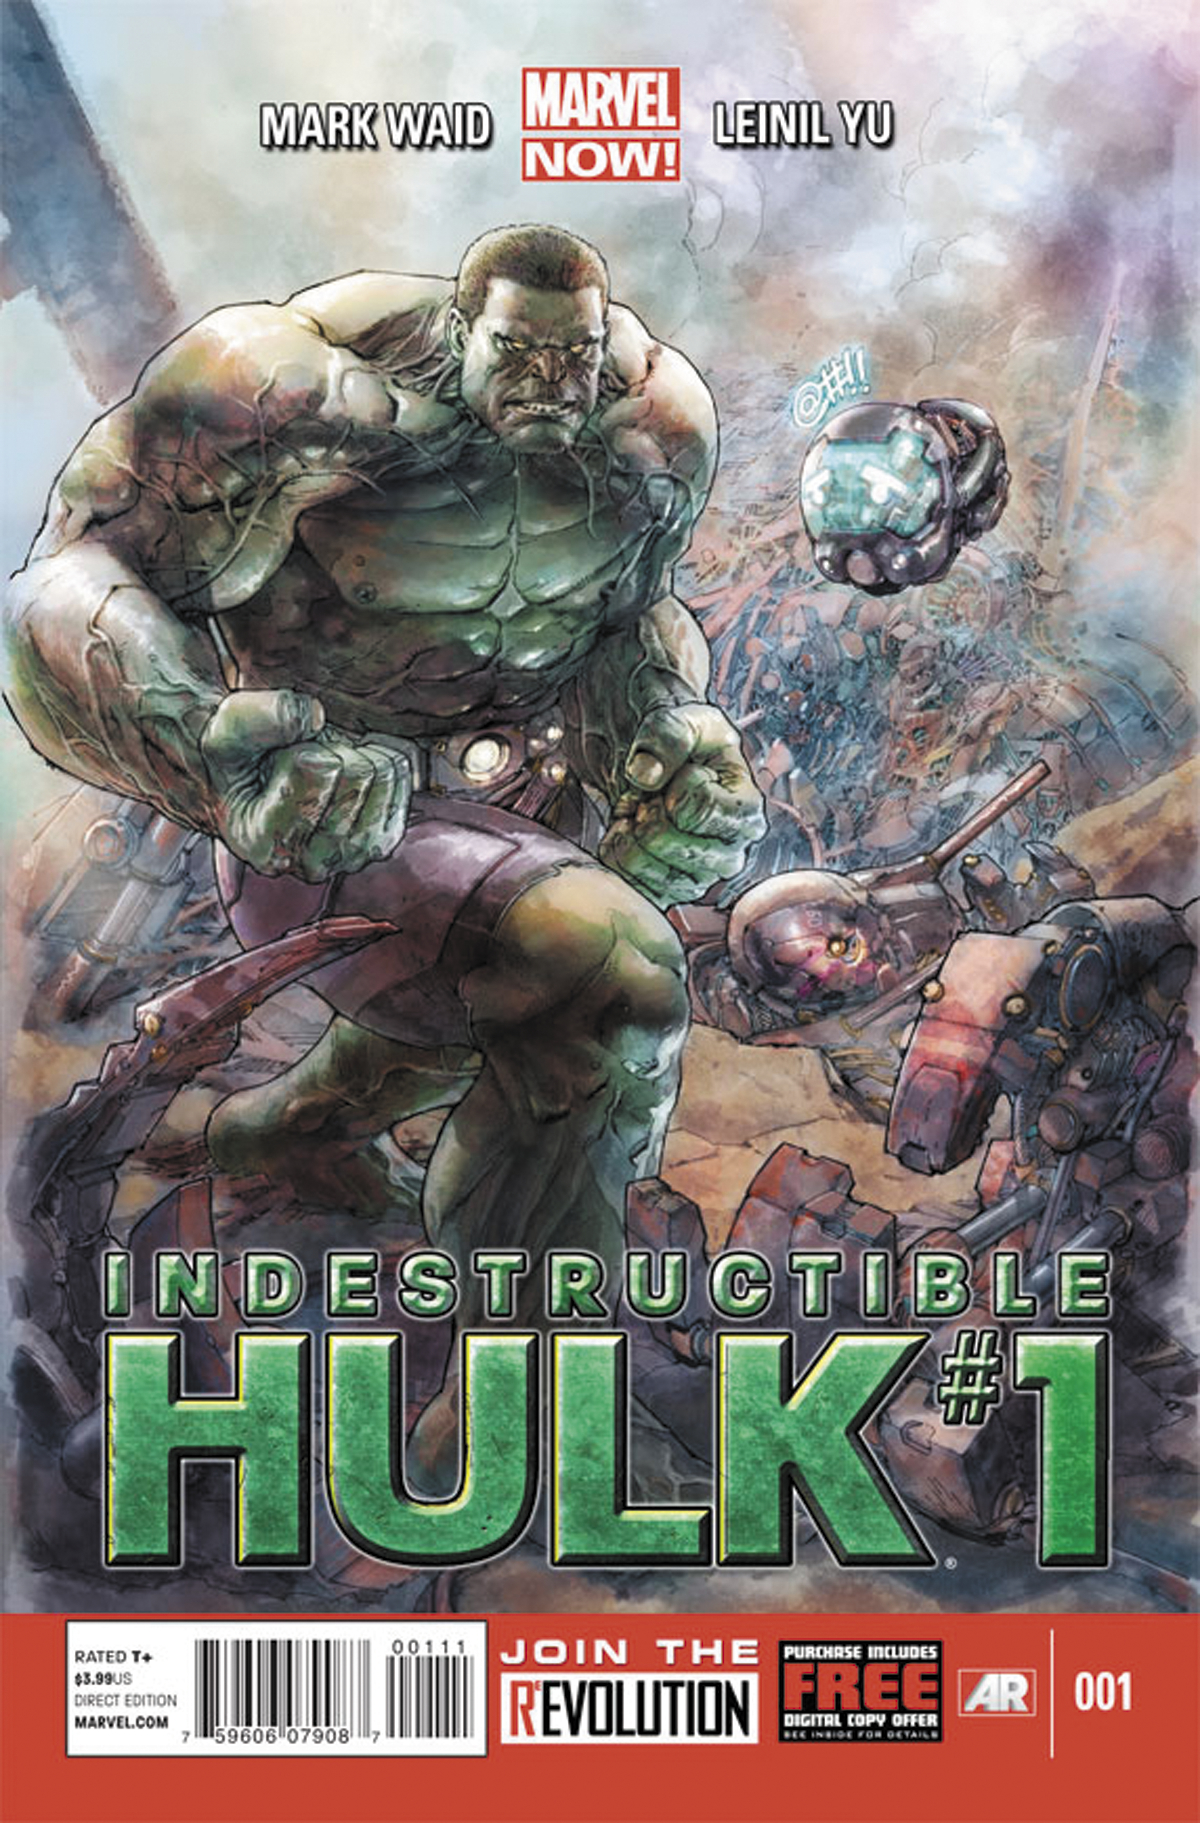 INDESTRUCTIBLE HULK #1 NOW